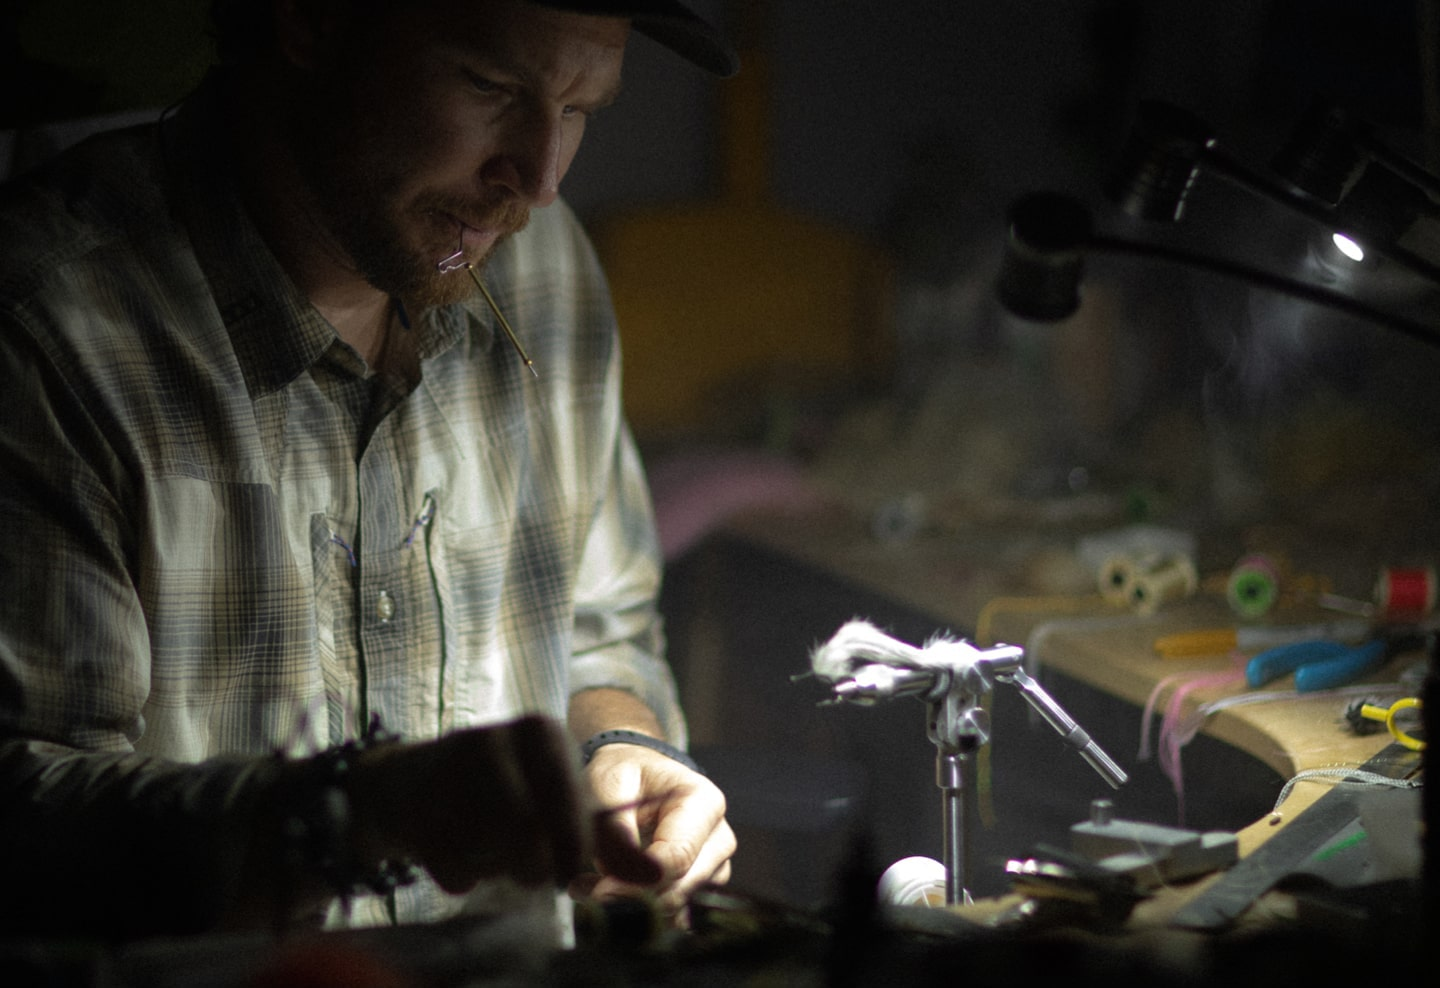 Drew's artisan level craftsmanship make him stand out in a sea of sameness.